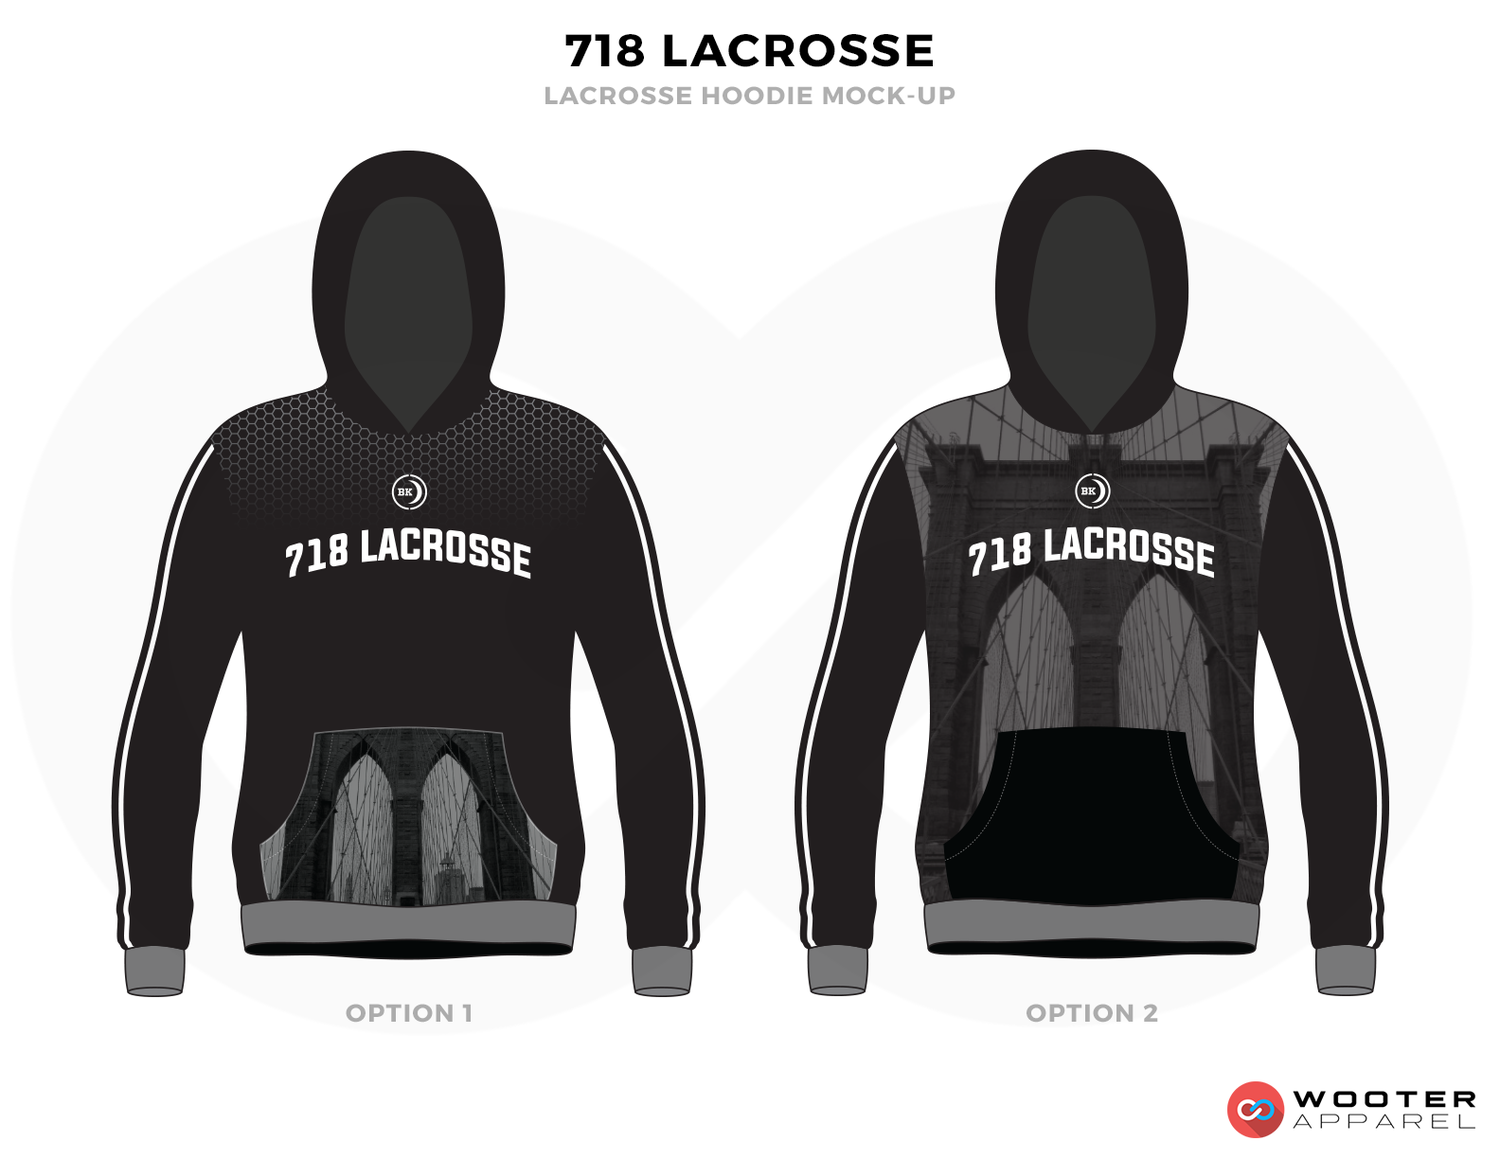 718 LACROSSE Black Grey and White Baseball Uniforms, Hoodies